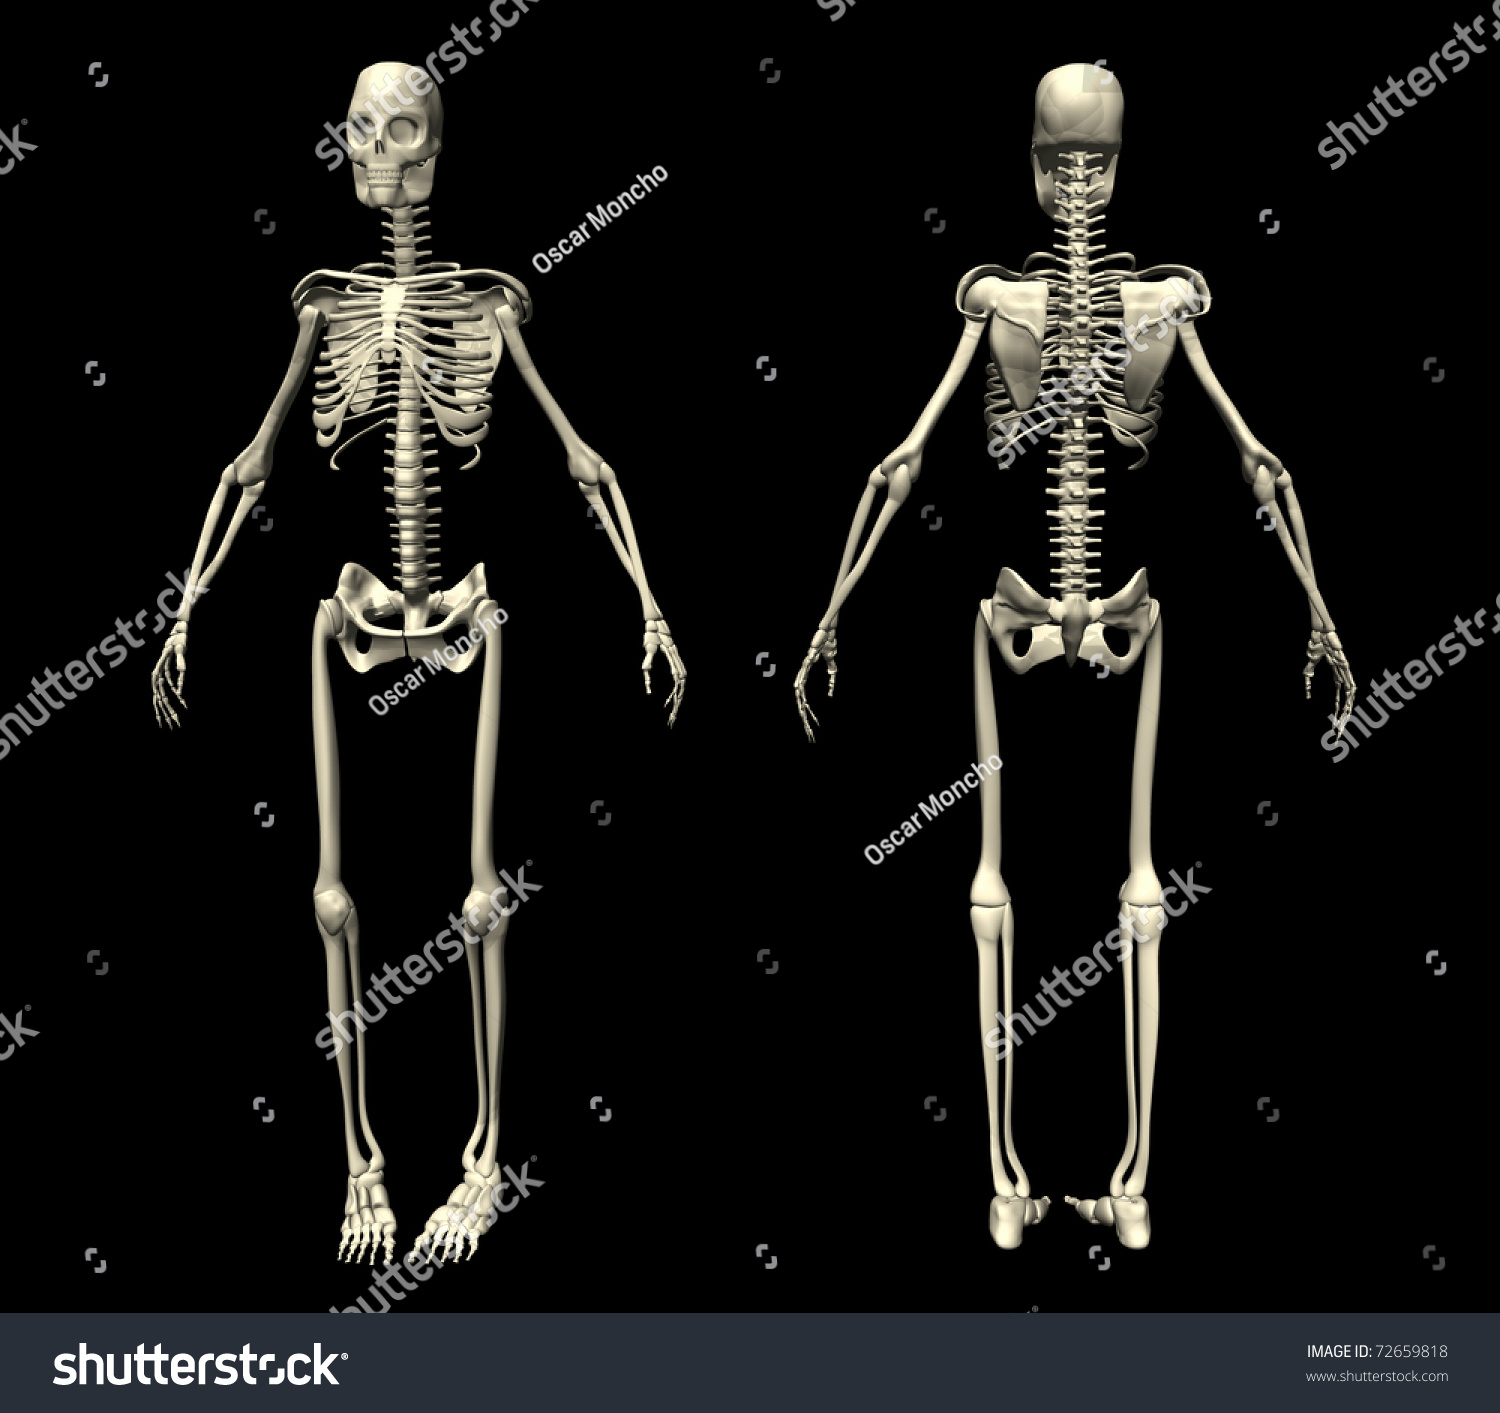 skeleton illustration seen before behind stock illustration, Skeleton